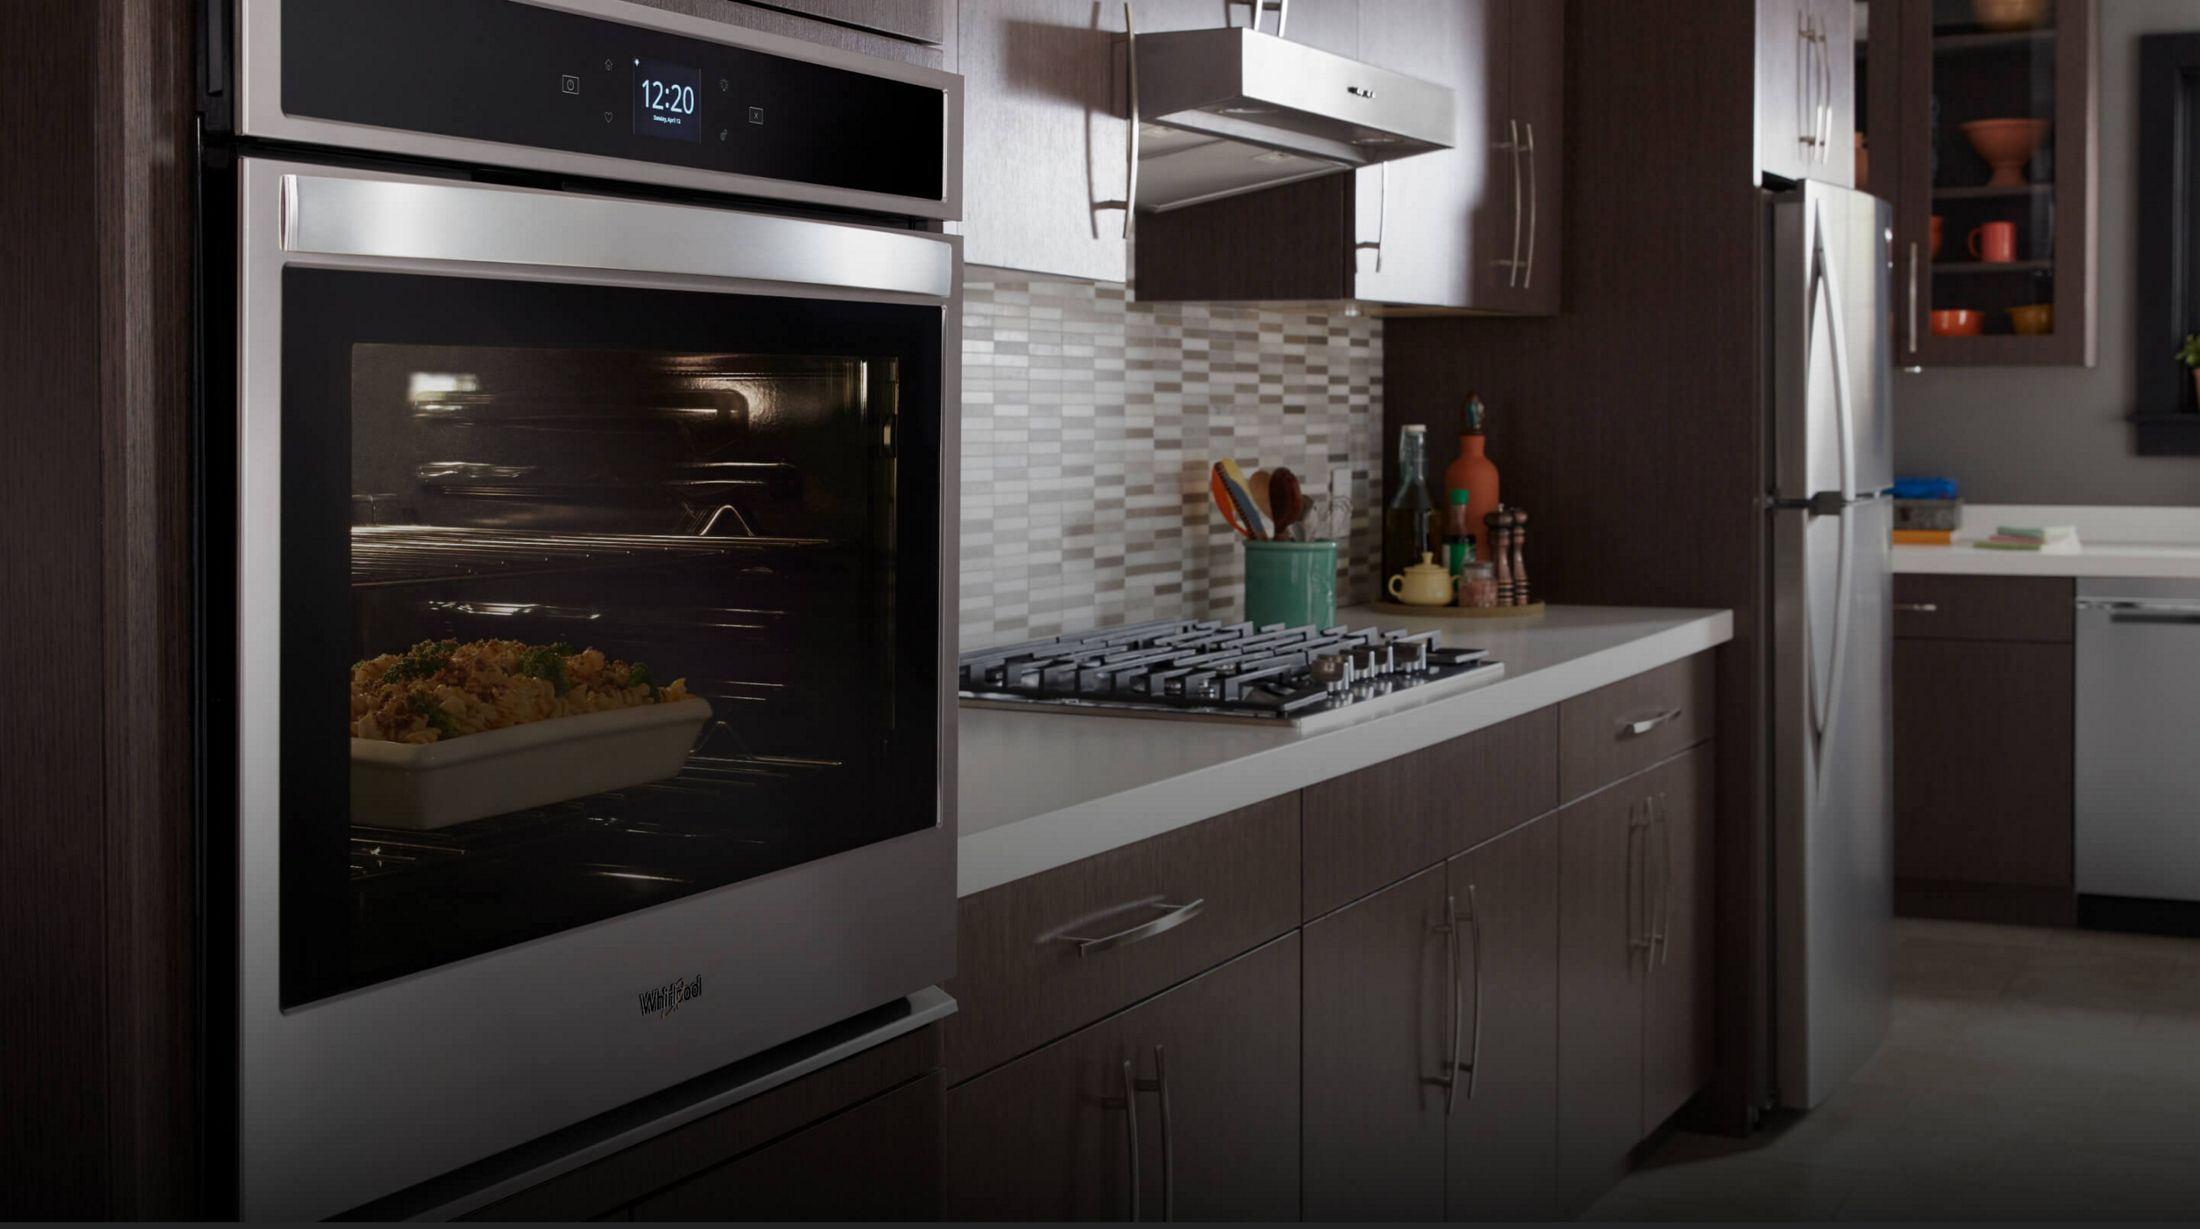 Whirlpool® smart wall oven in a kitchen